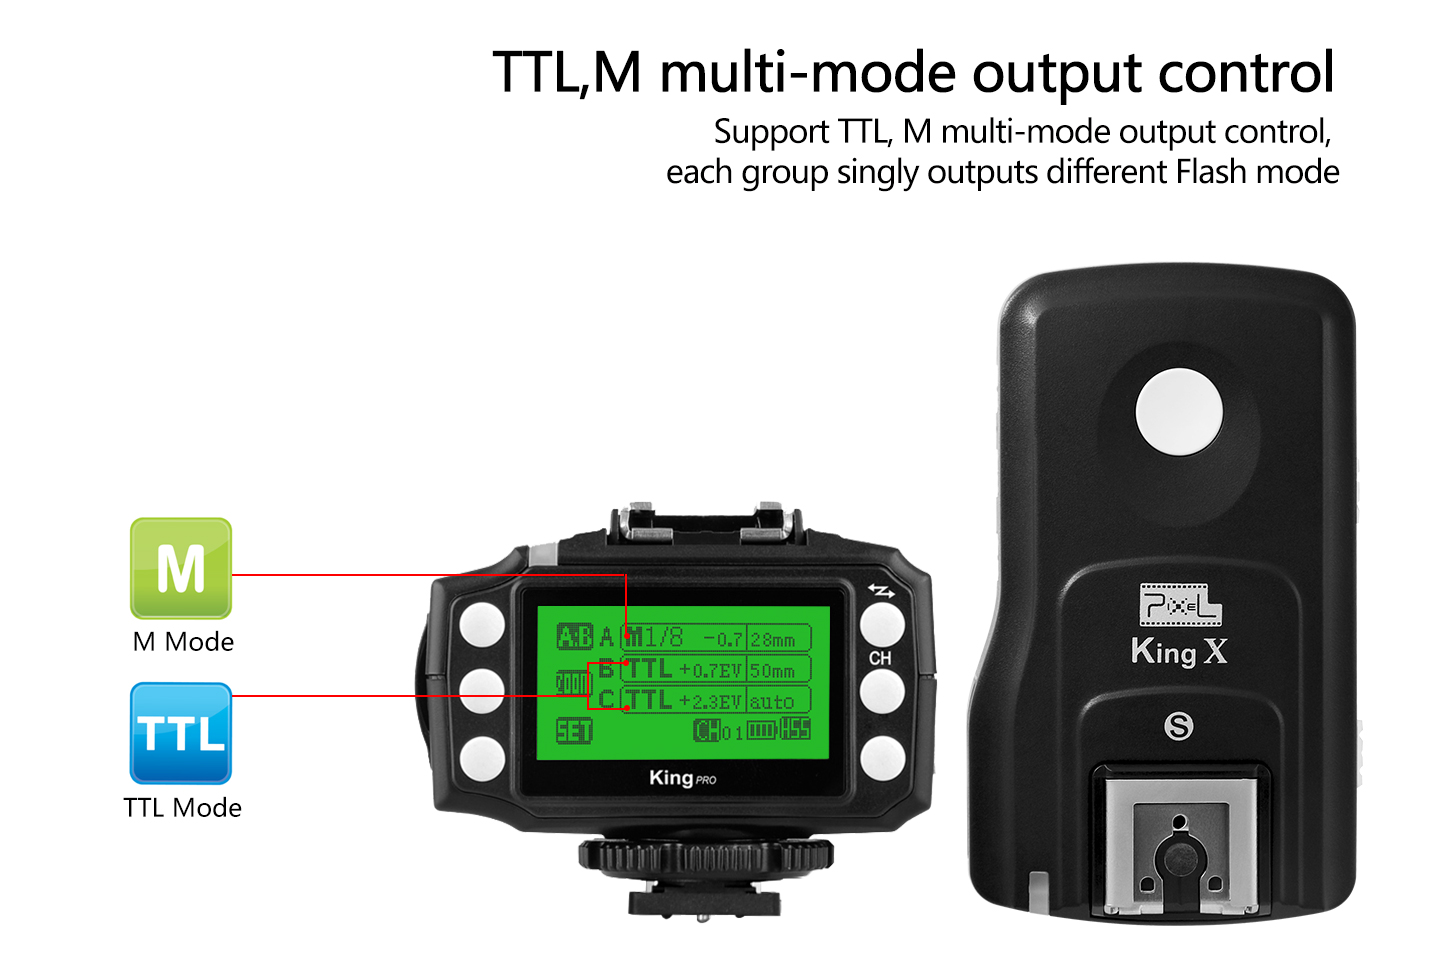 TTL, M multi-mode output control